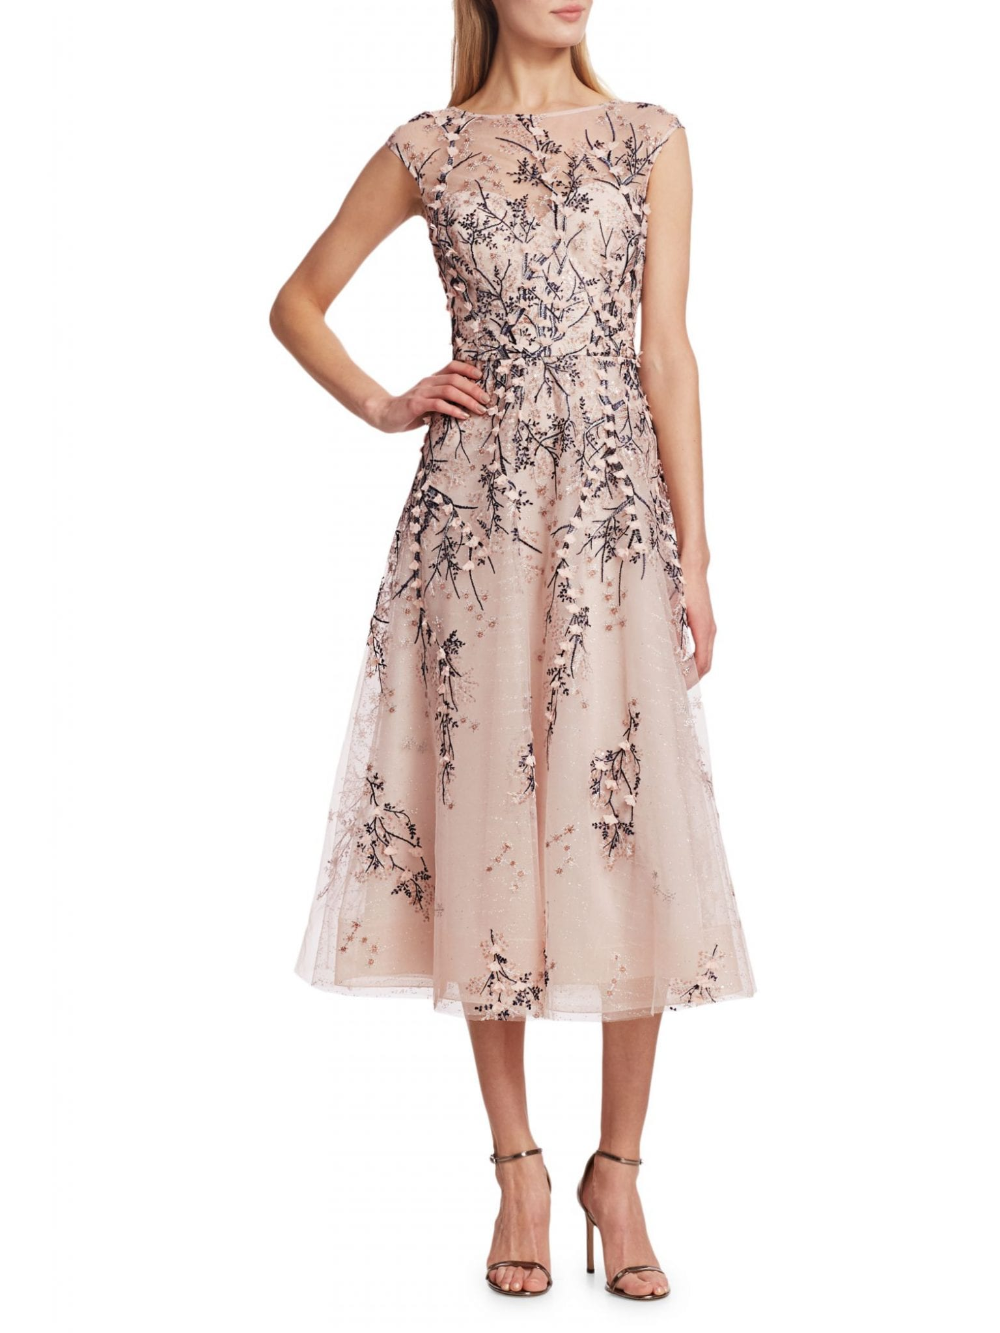 TERI JON BY RICKIE FREEMAN Tulle Floral Lace Dress - We Select